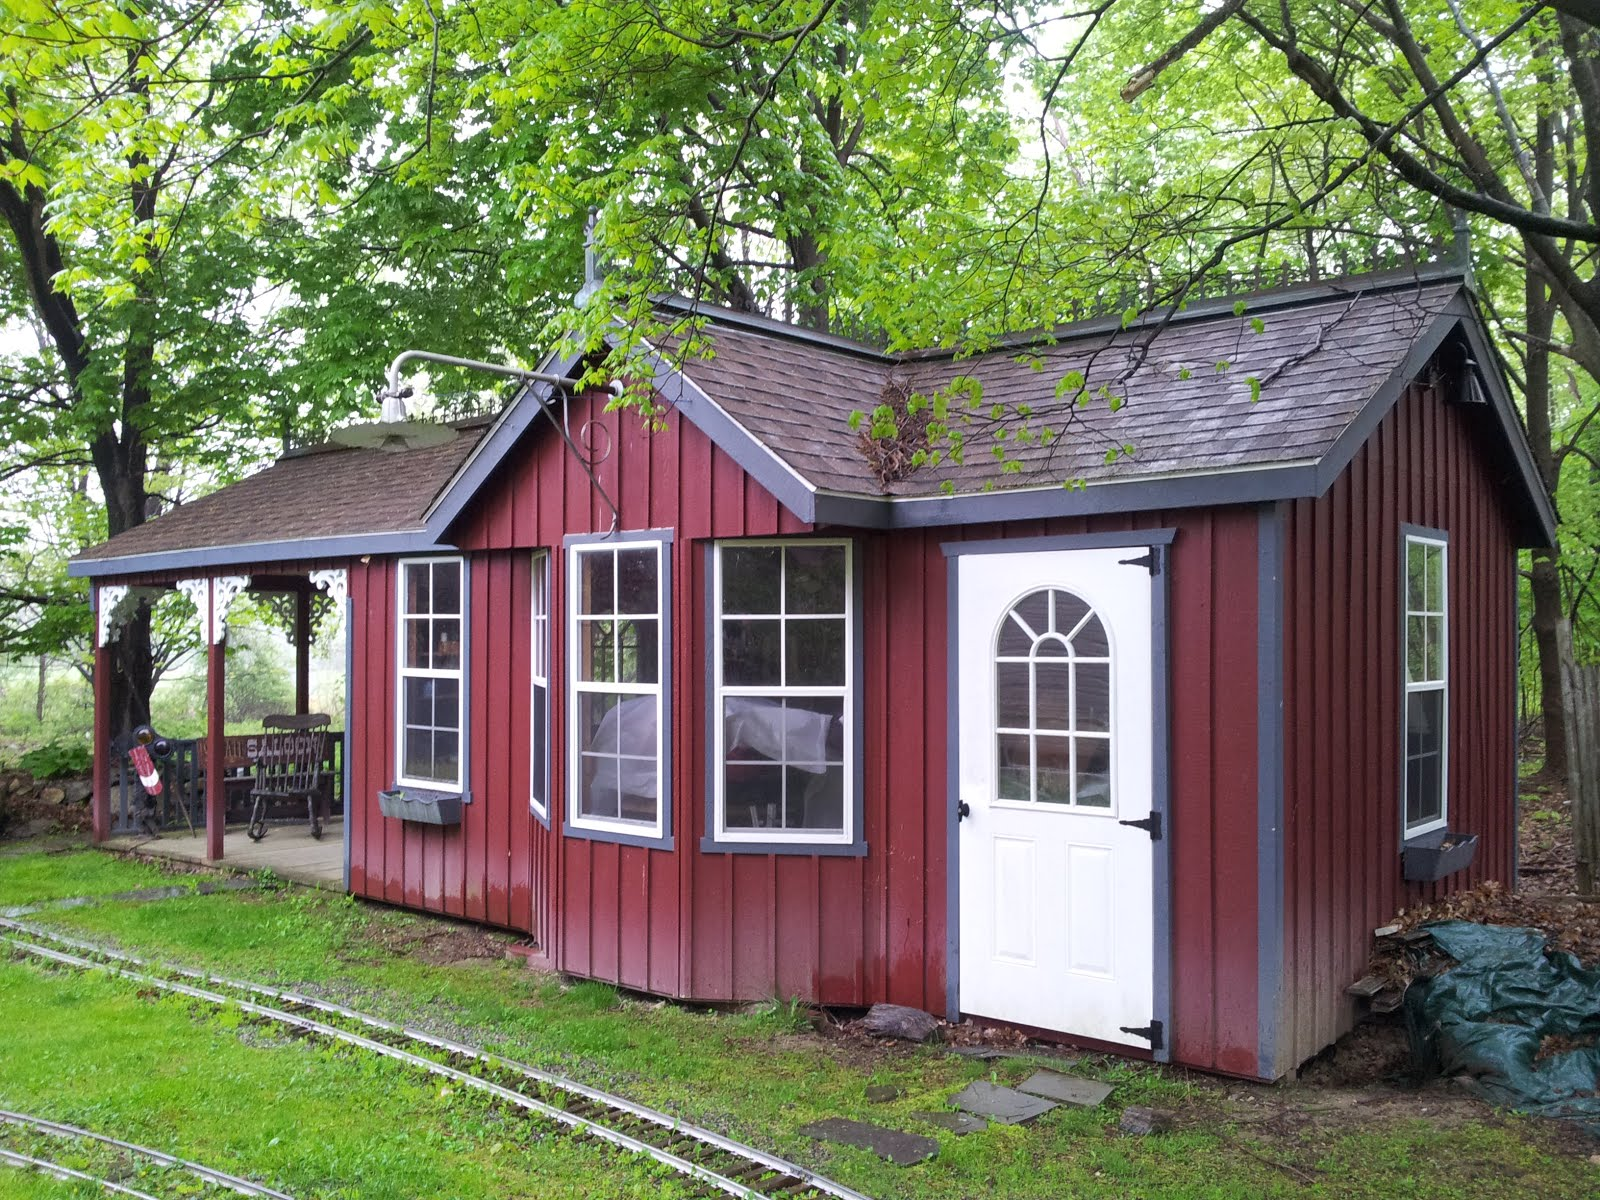 Where to buy amish built sheds near me and how can i tell for Amish built sheds